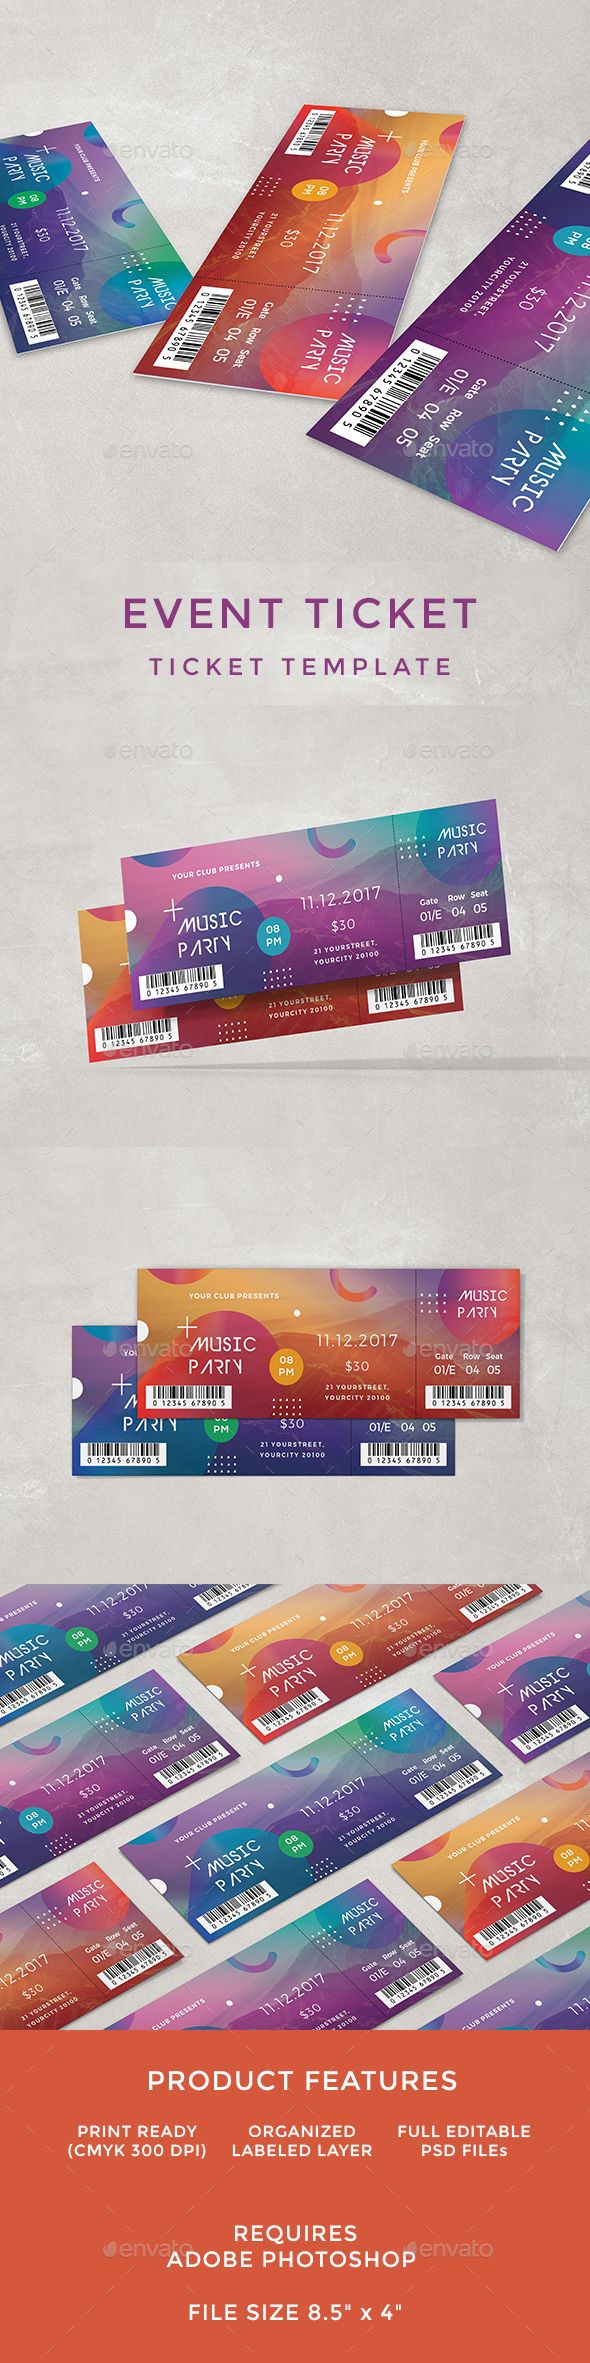 Event Ticket - Cards & Invites Print Templates Download here: https://graphicriver.net/item/event-ticket/19545116?ref=classicdesignp